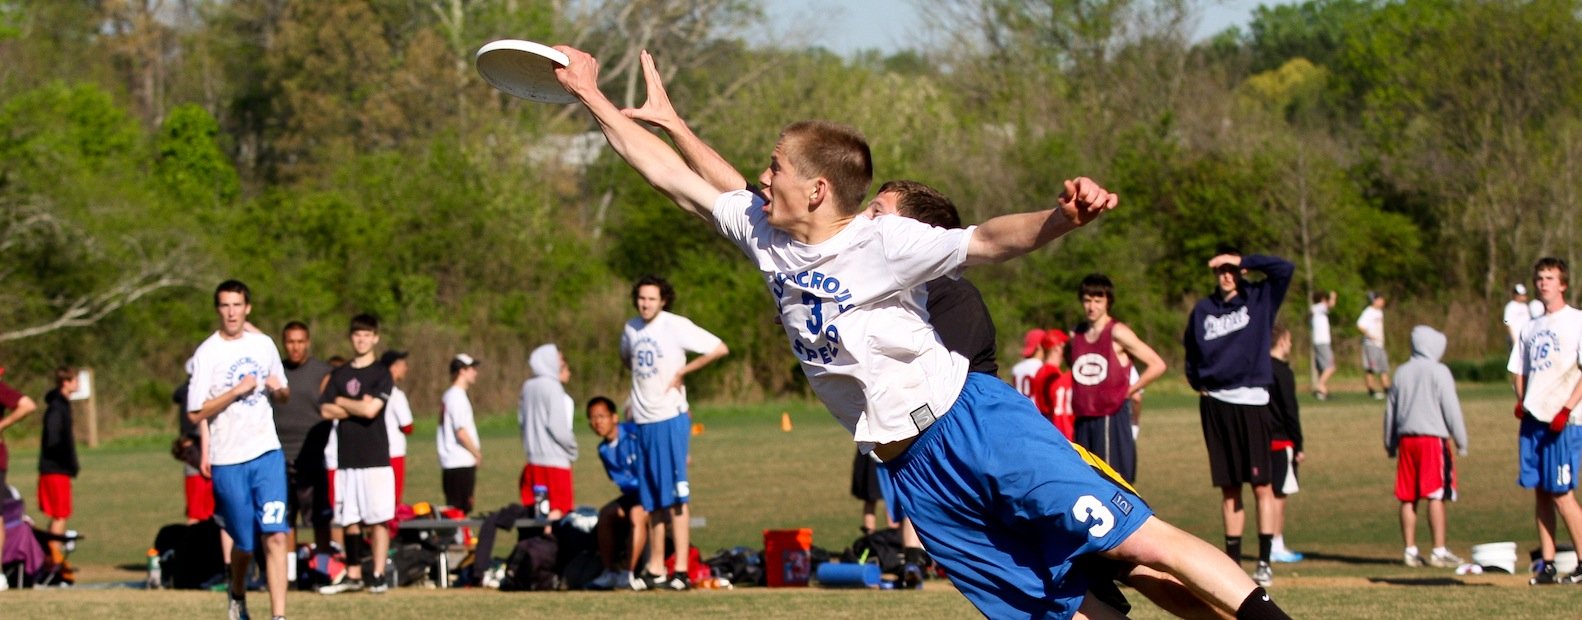 A boy dives to grasp frisbee during an ultimate disc game